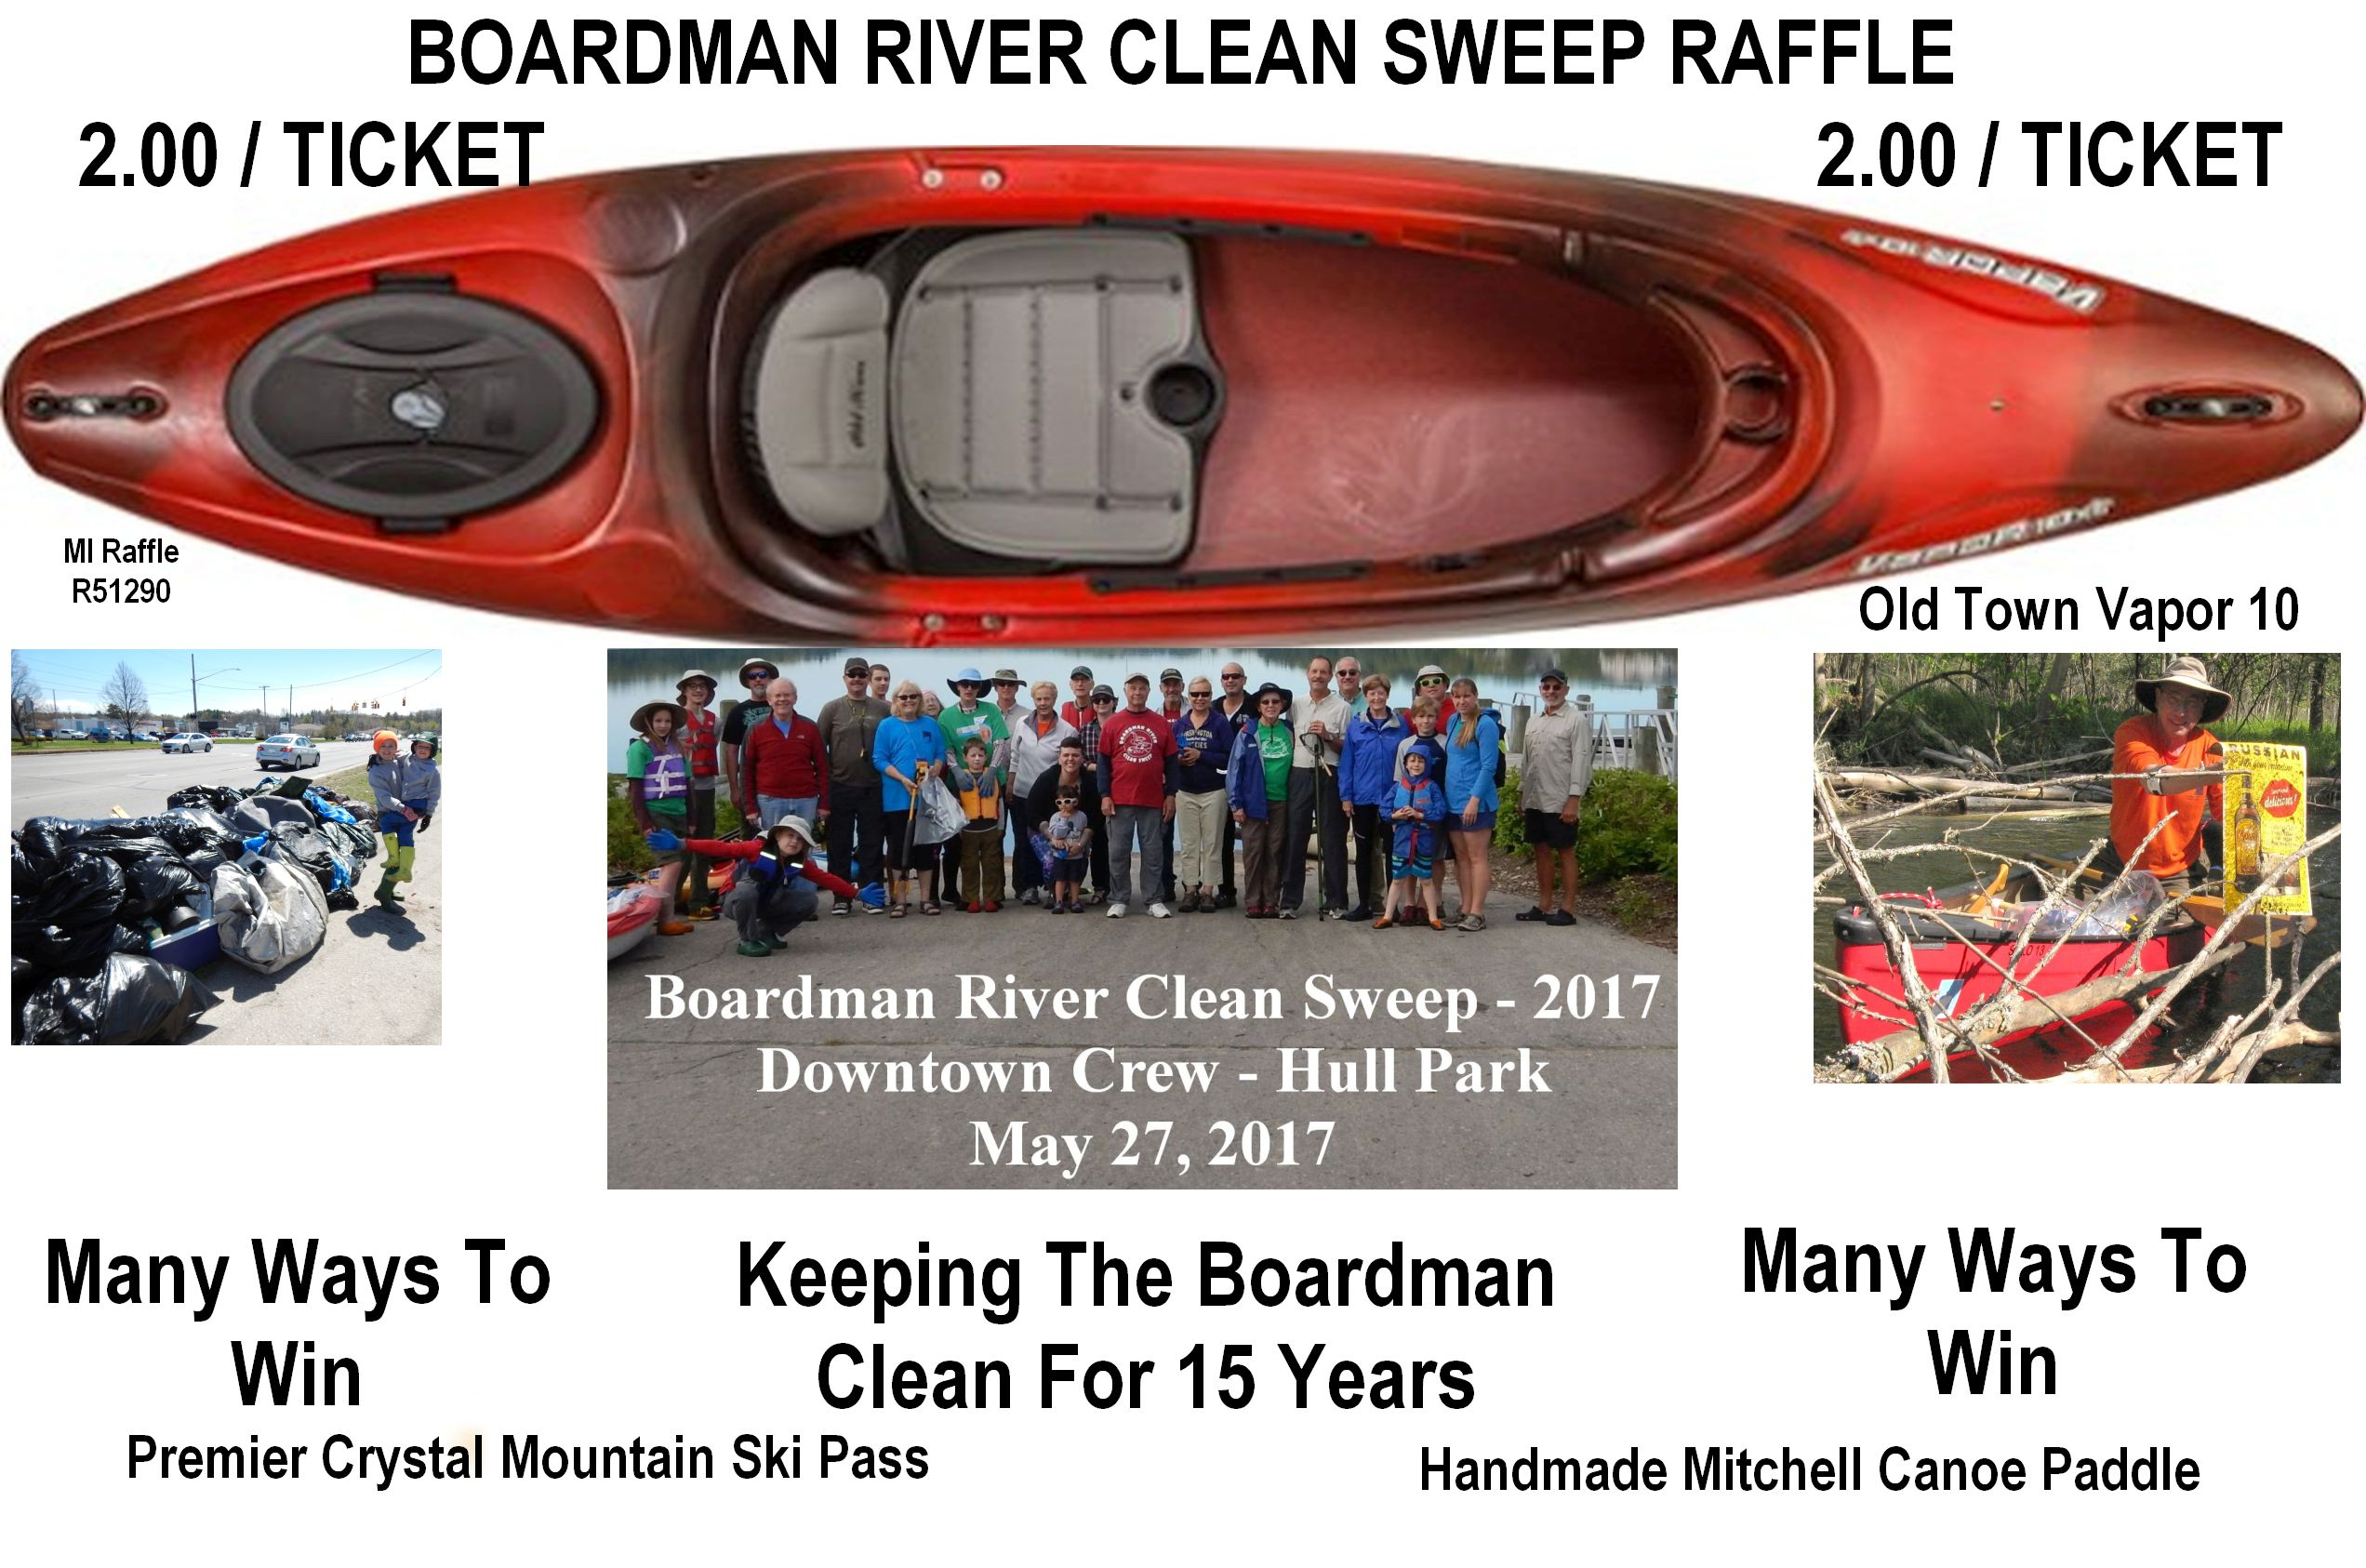 The BRCS wishes to thank Dunham's of Traverse City, Crystal Mountain of Thompsonville,  Mitchell Paddle Co. of New Canaan, NH, Pine River Paddle Center and all our donors for their generous donations to support this effort.  Click on this image to see full sized image.